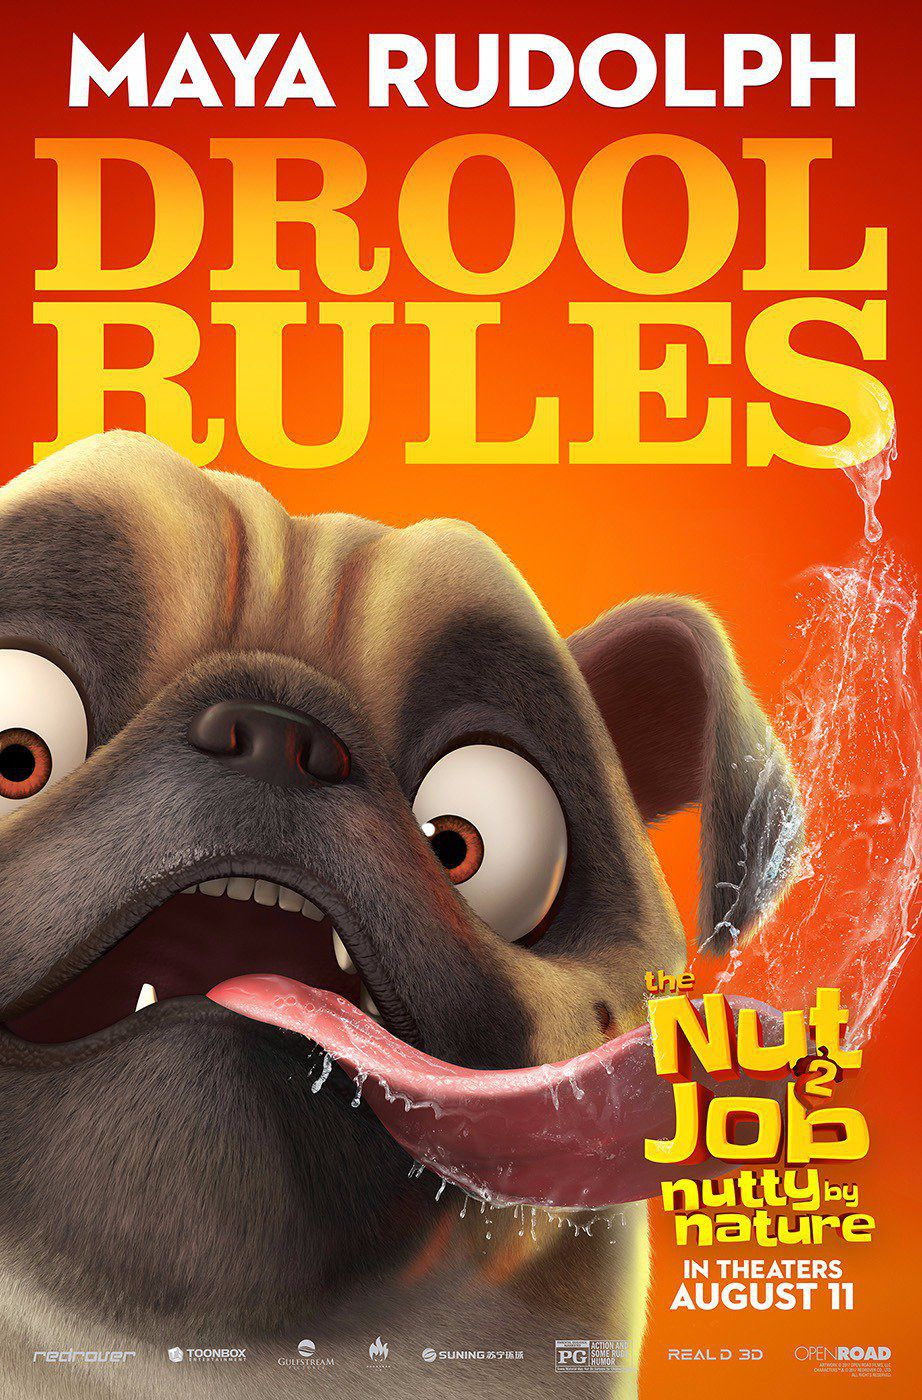 Film - The Nut Job 2 - Operazione Nocciolina 2 - Nutty by Nature - Drool Rules Carlino